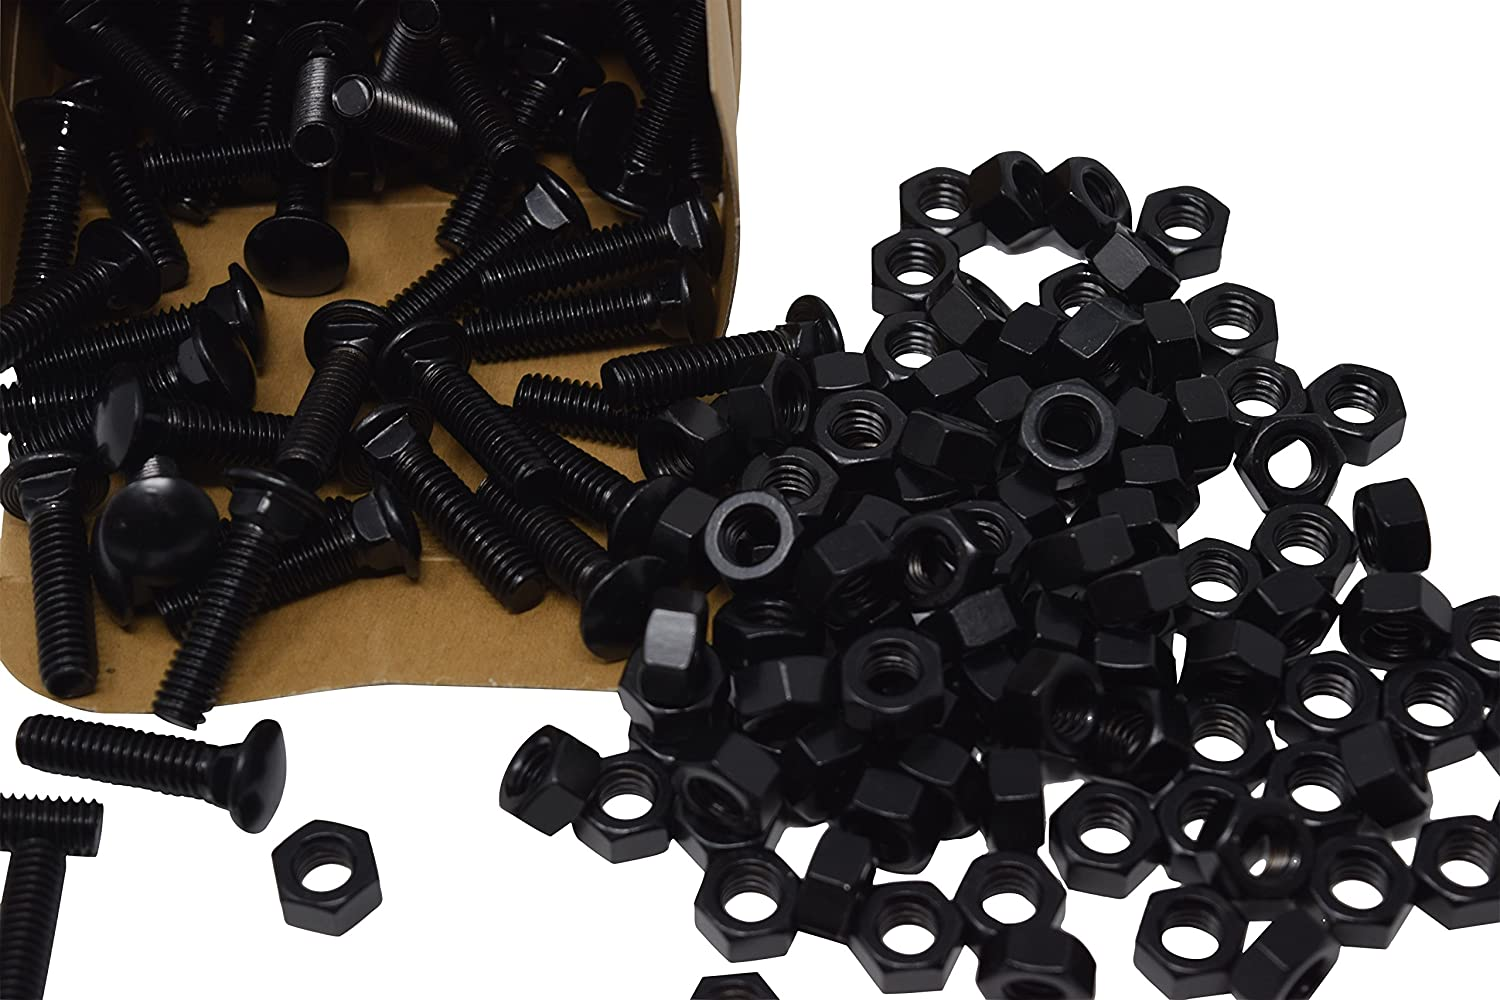 Includes Nuts Black Carriage Bolts 5//16in x 1-1//4in 100 Count